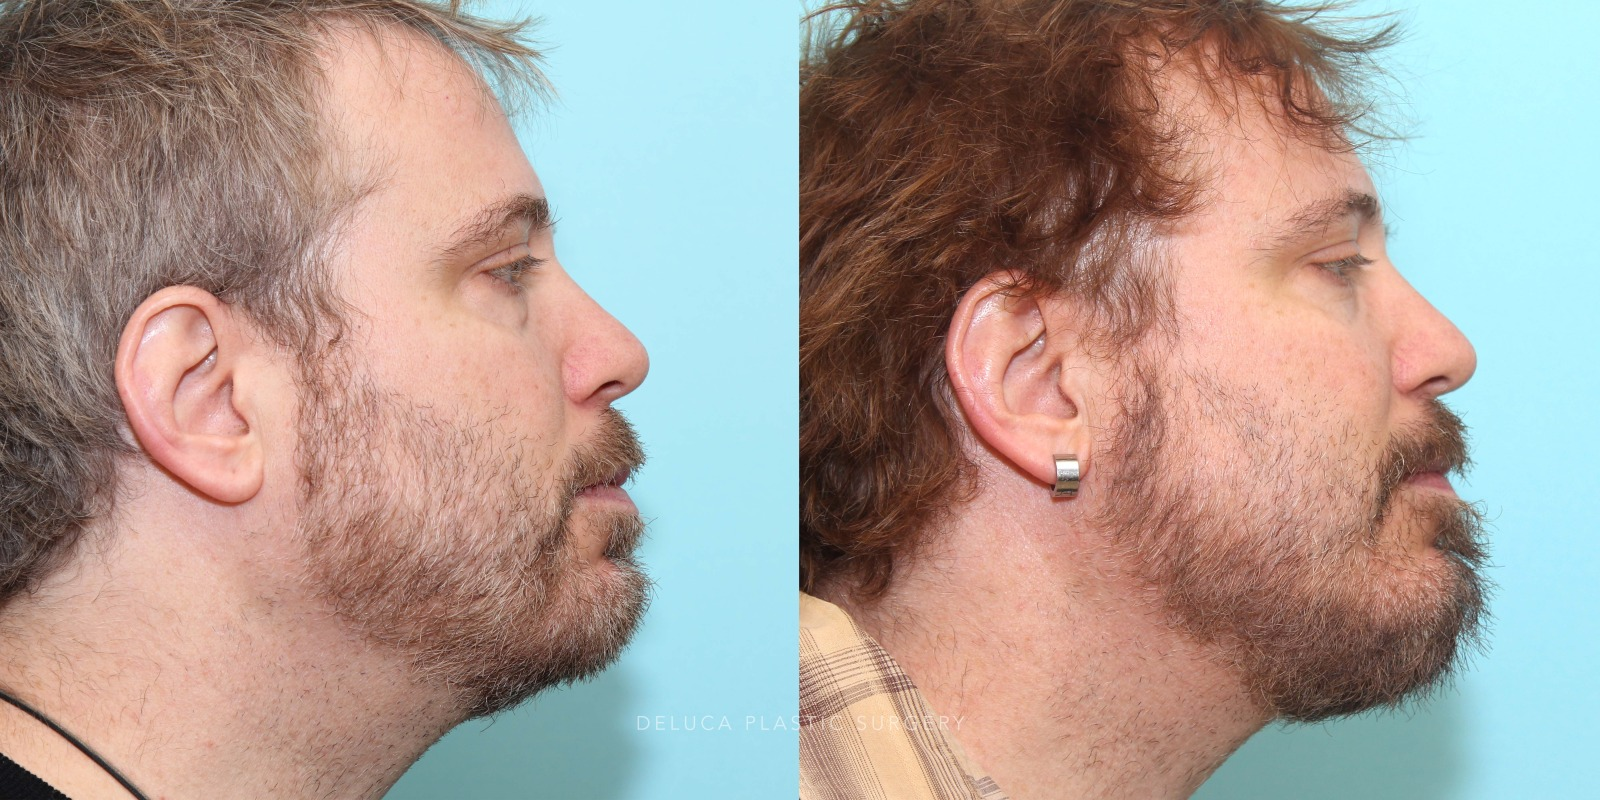 51 year old Lower Eyelid Blepharoplasty with Fat Redraping